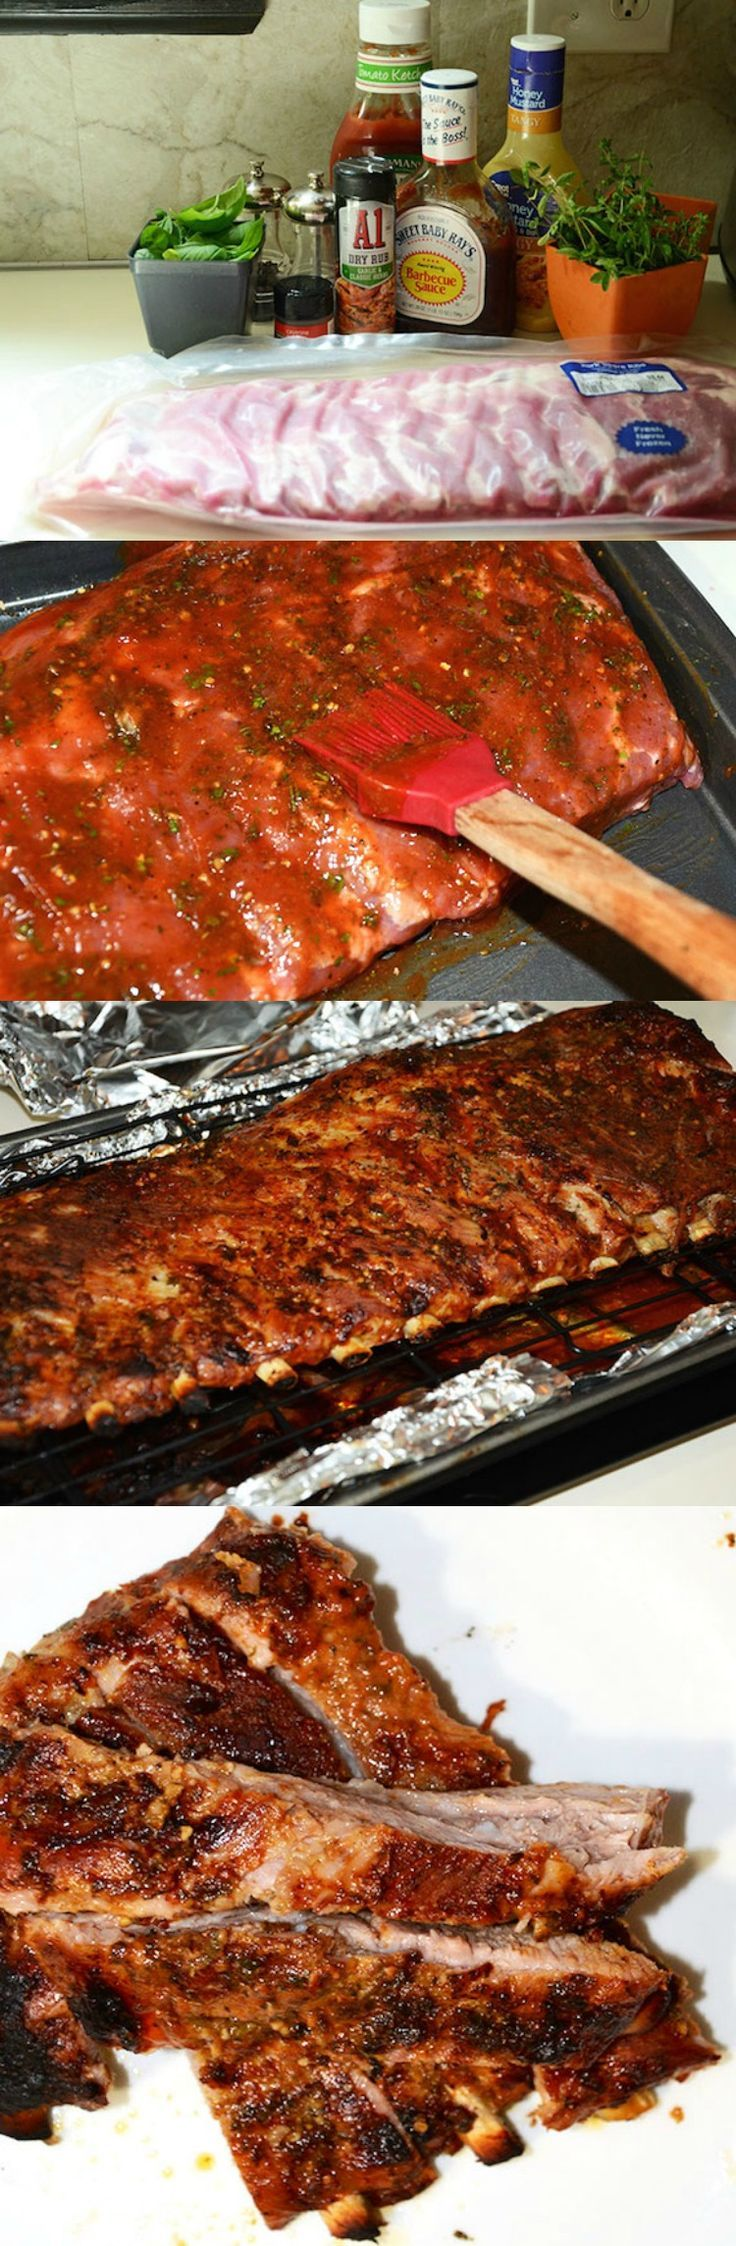 Learn how to make ribs with this tutorial from Jacy - the delicious, juiciest, and yummiest ribs ever!